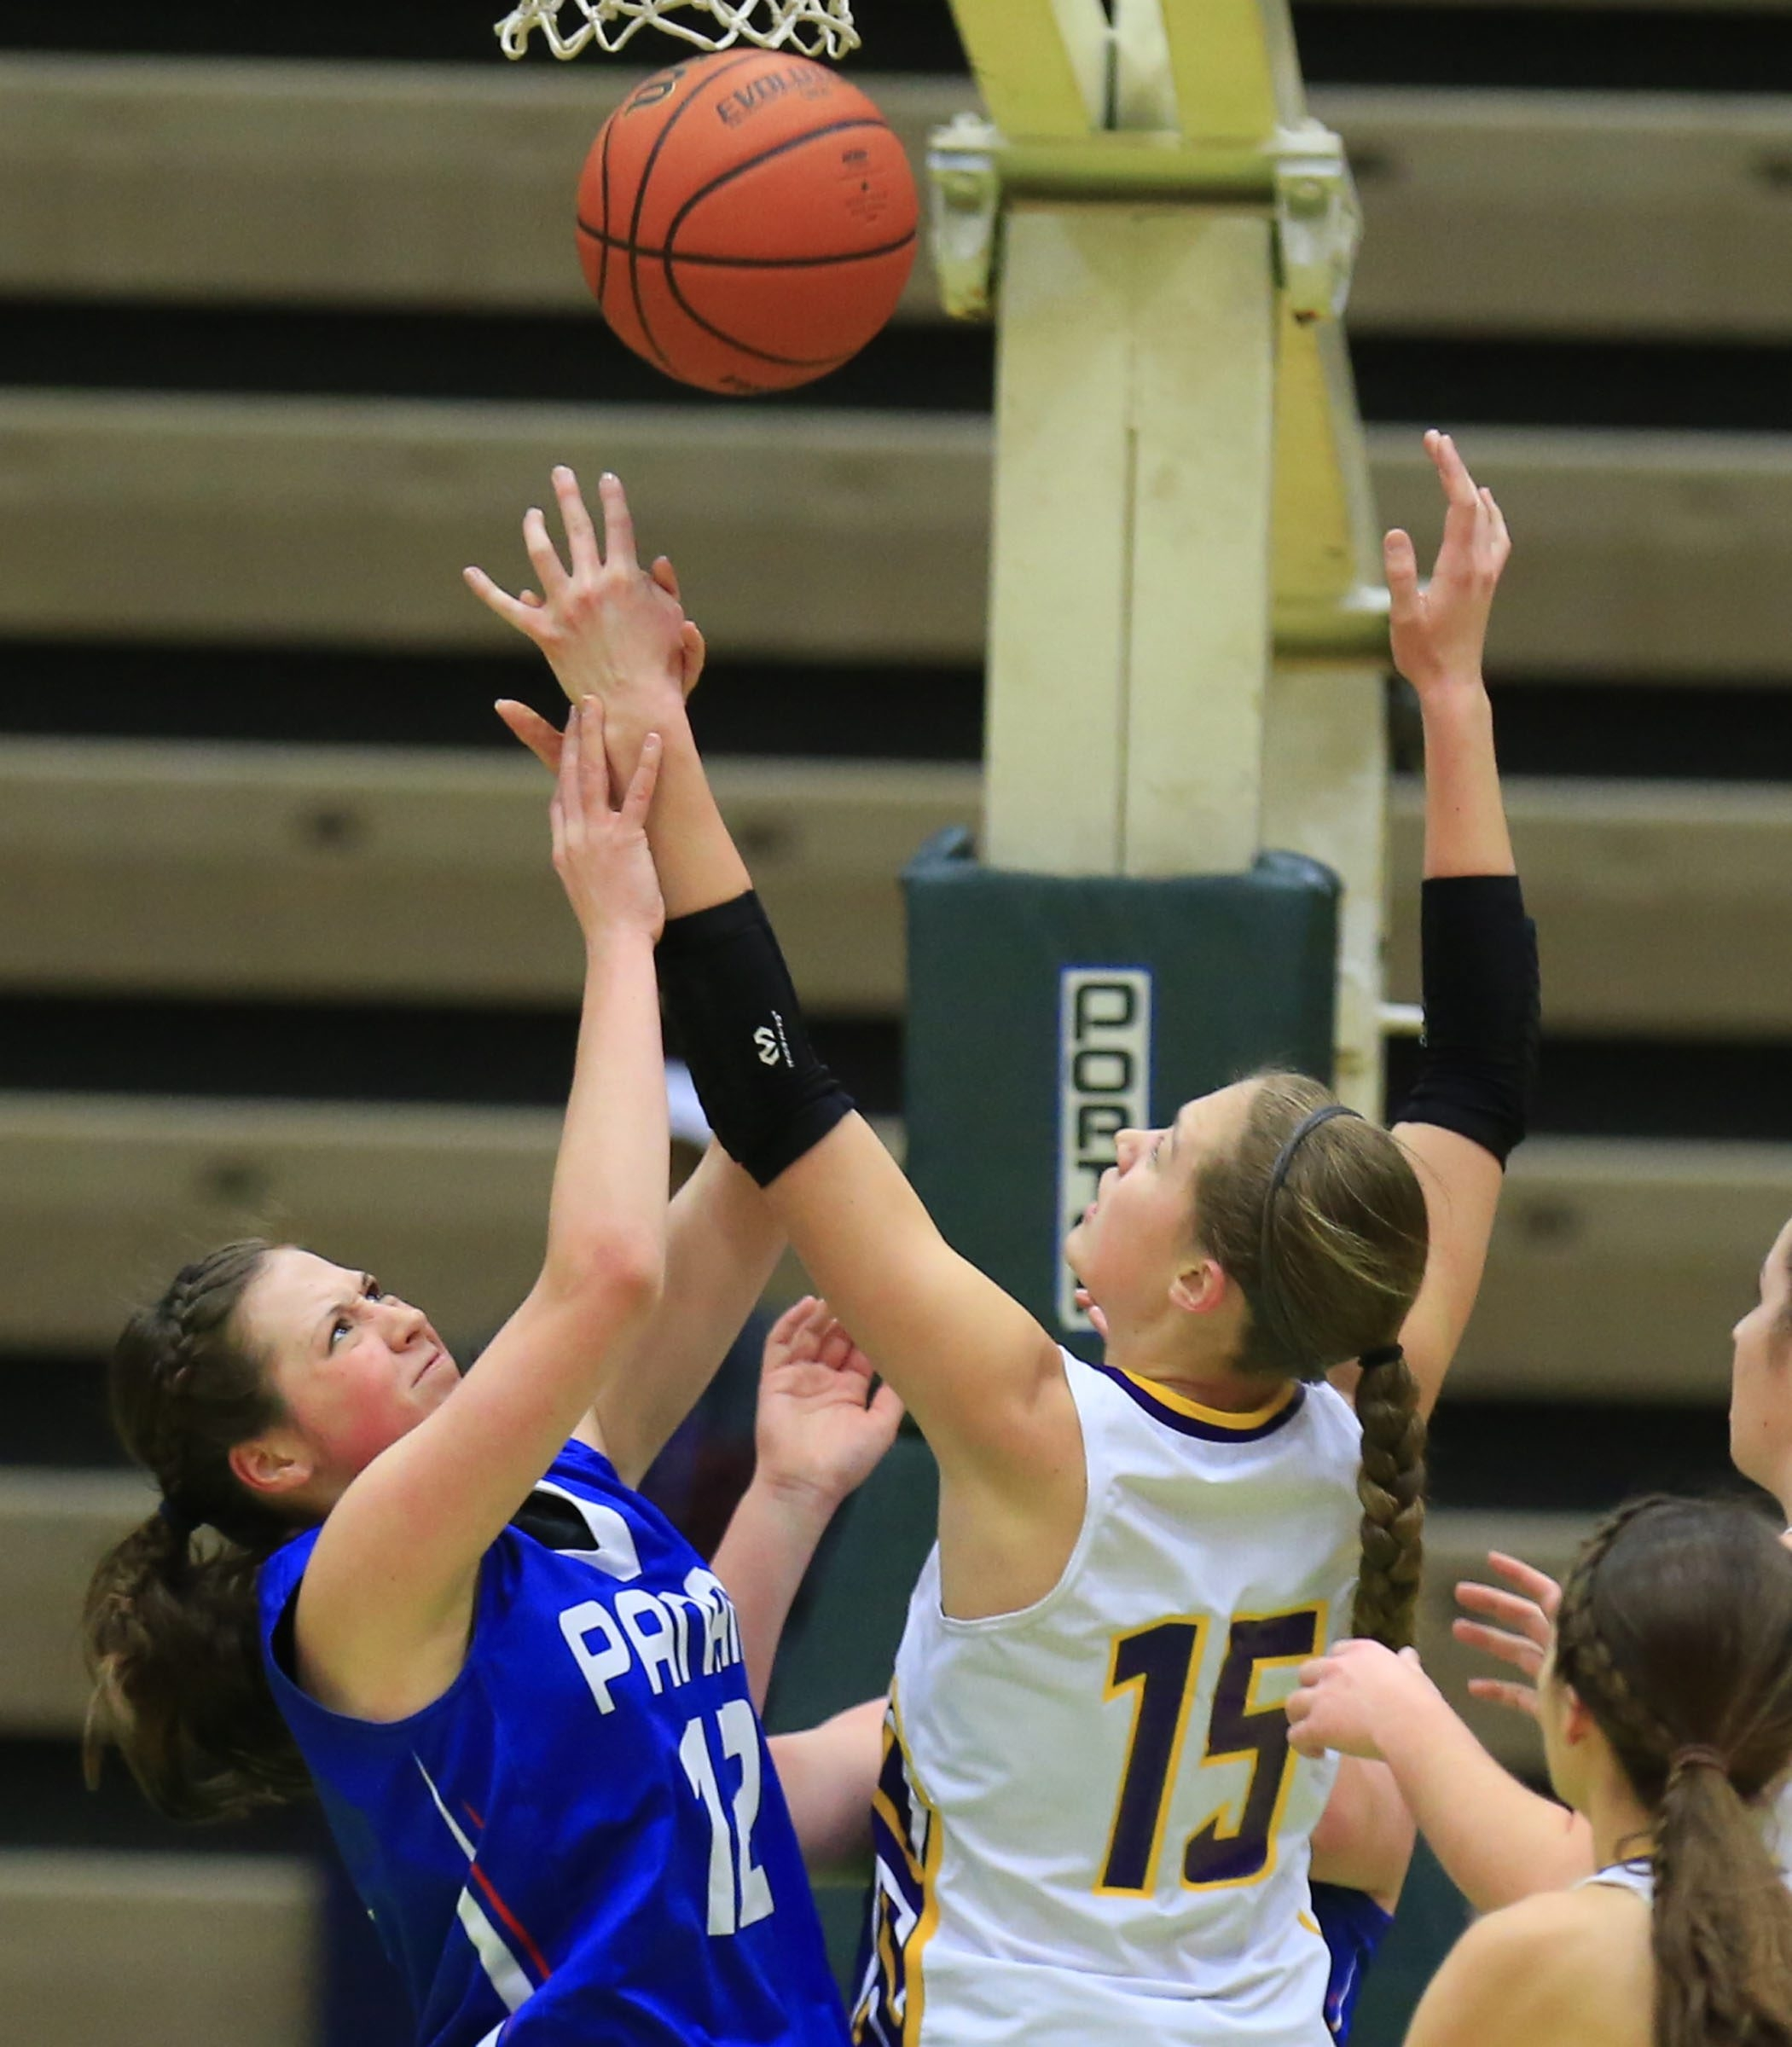 2LINE CUTLINE Panama's Brittany Lenart and Heuvelton Central's Paige mccormick battle for a rebound during the first half of the New York State  Class D  semi-final in the 2015 NYSPHSAA Girls Basketball Championships at Hudson Valley Community College on Saturday, March 21, 2015.(Harry Scull Jr./Buffalo News)